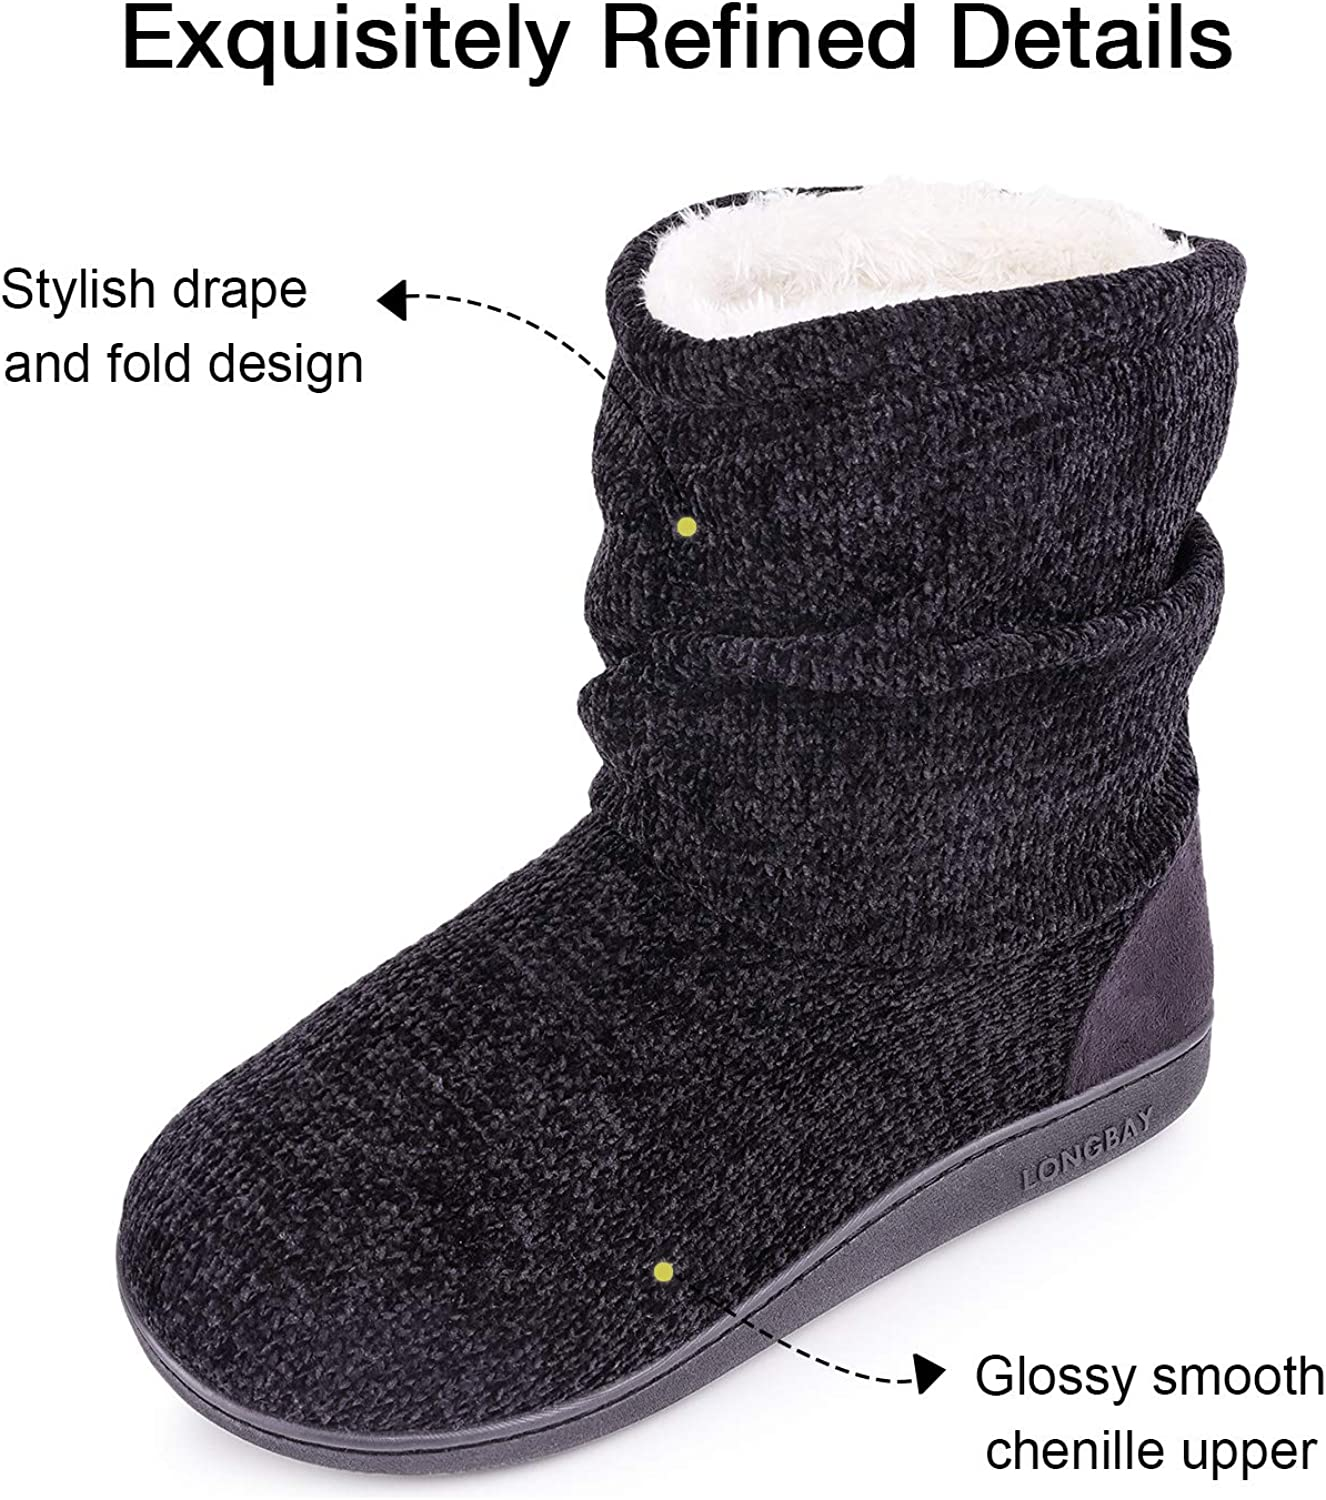 Women/'s Soft Slippers Booties Size 35-38 39-42 6-8 3-5 Christmas Present